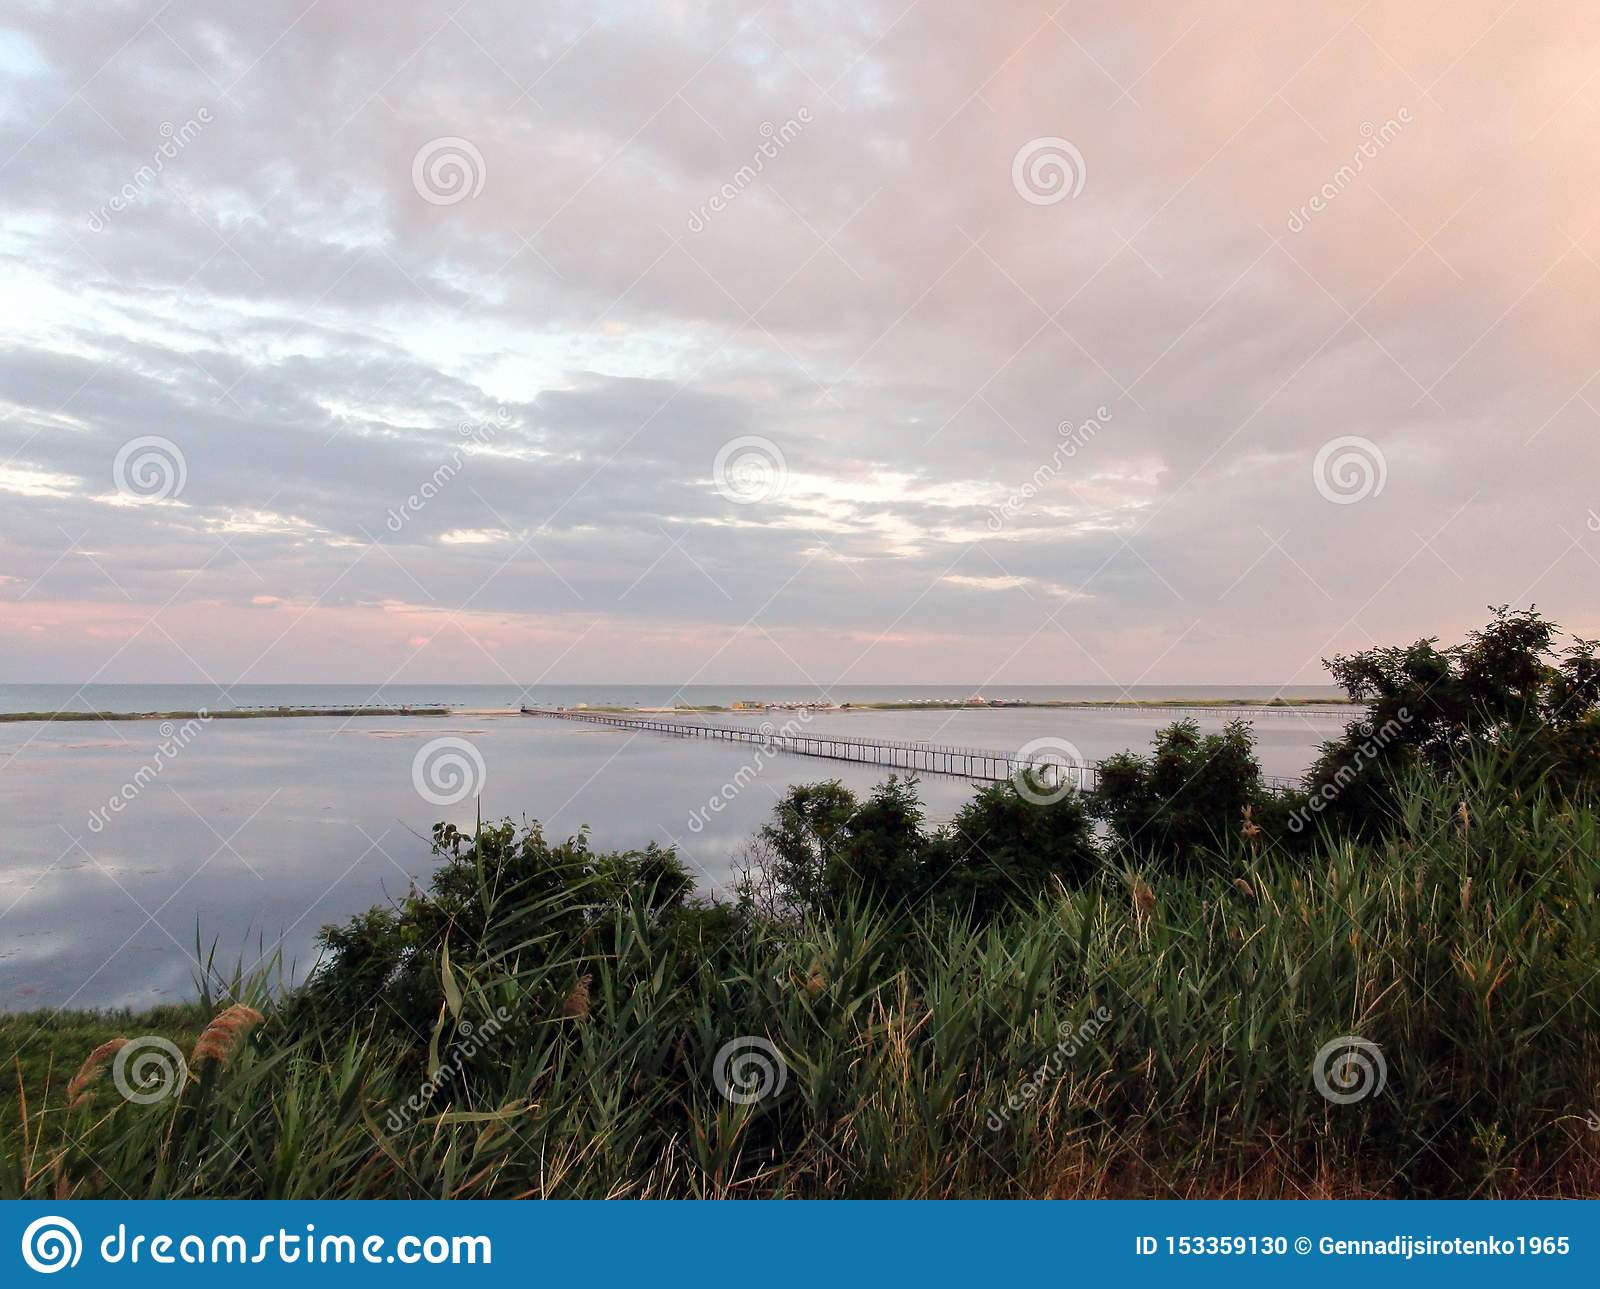 Landscapes of the flora of the Azov Sea and sea evening landscapes near the town of Primorsk of the Zaporizhzhya region. Ukraine.